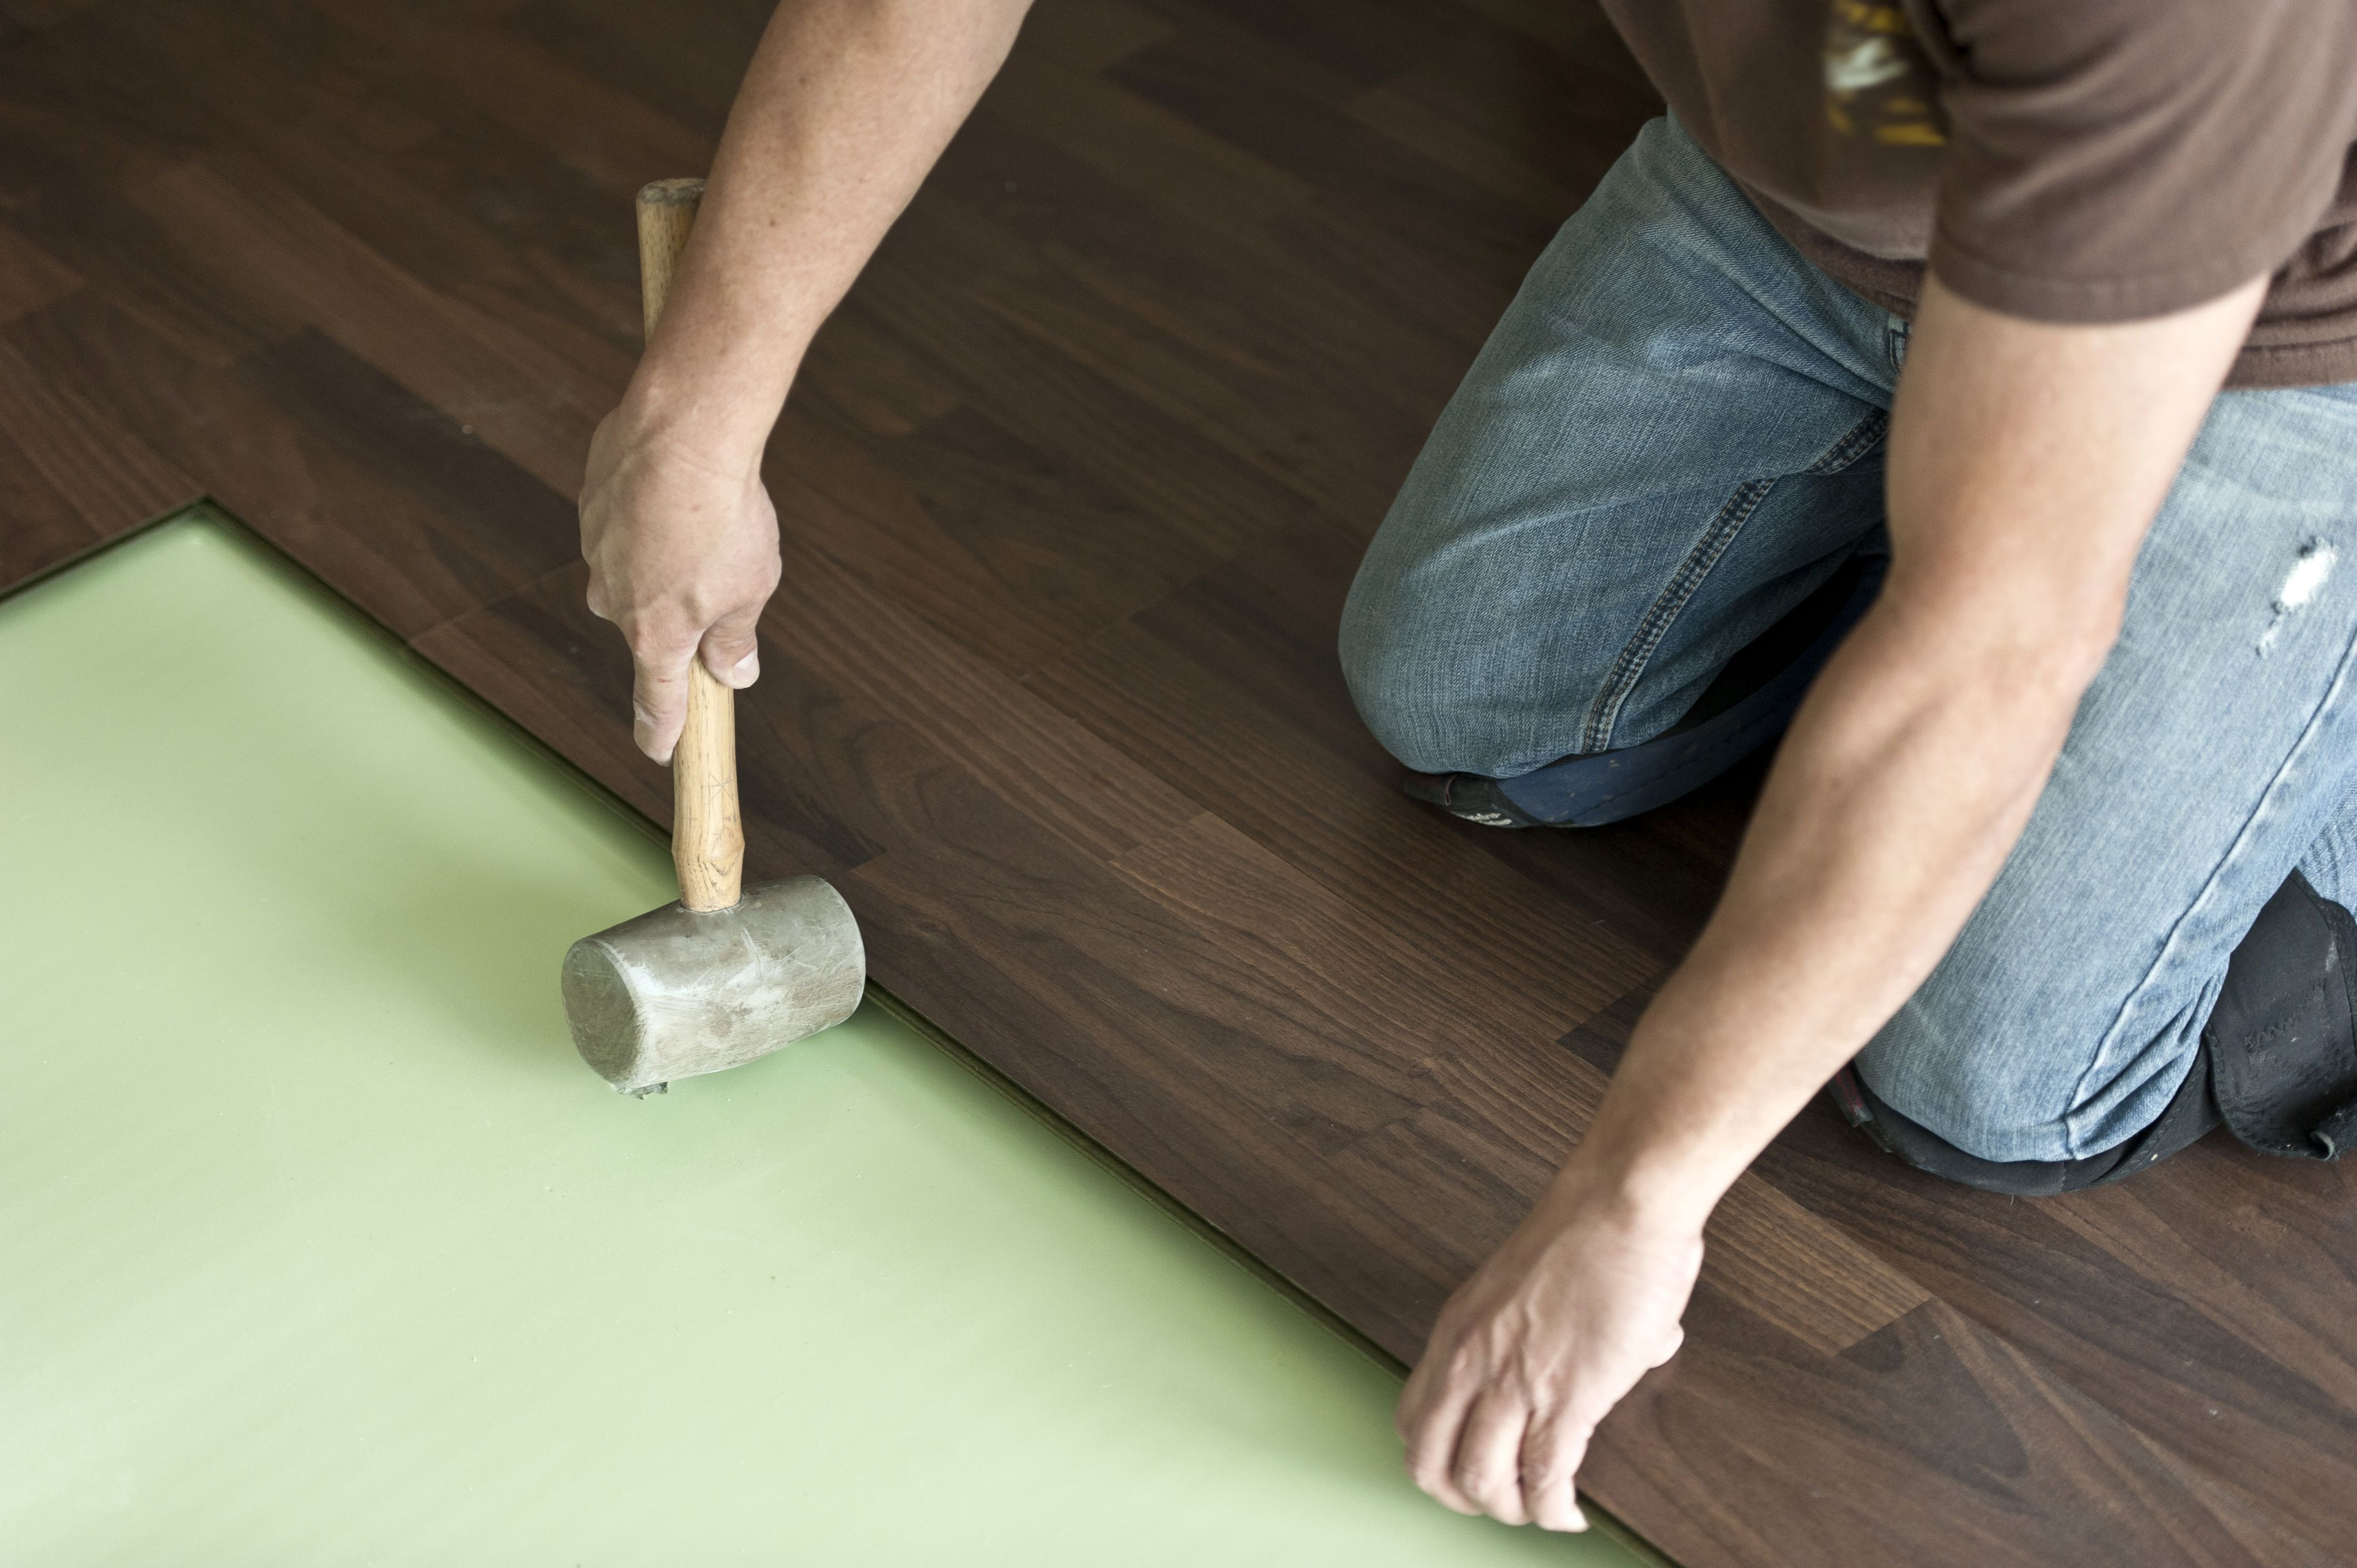 nail down hardwood floor on concrete of can a foam pad be use under solid hardwood flooring pertaining to installing hardwood floor 155149312 57e967d45f9b586c35ade84a